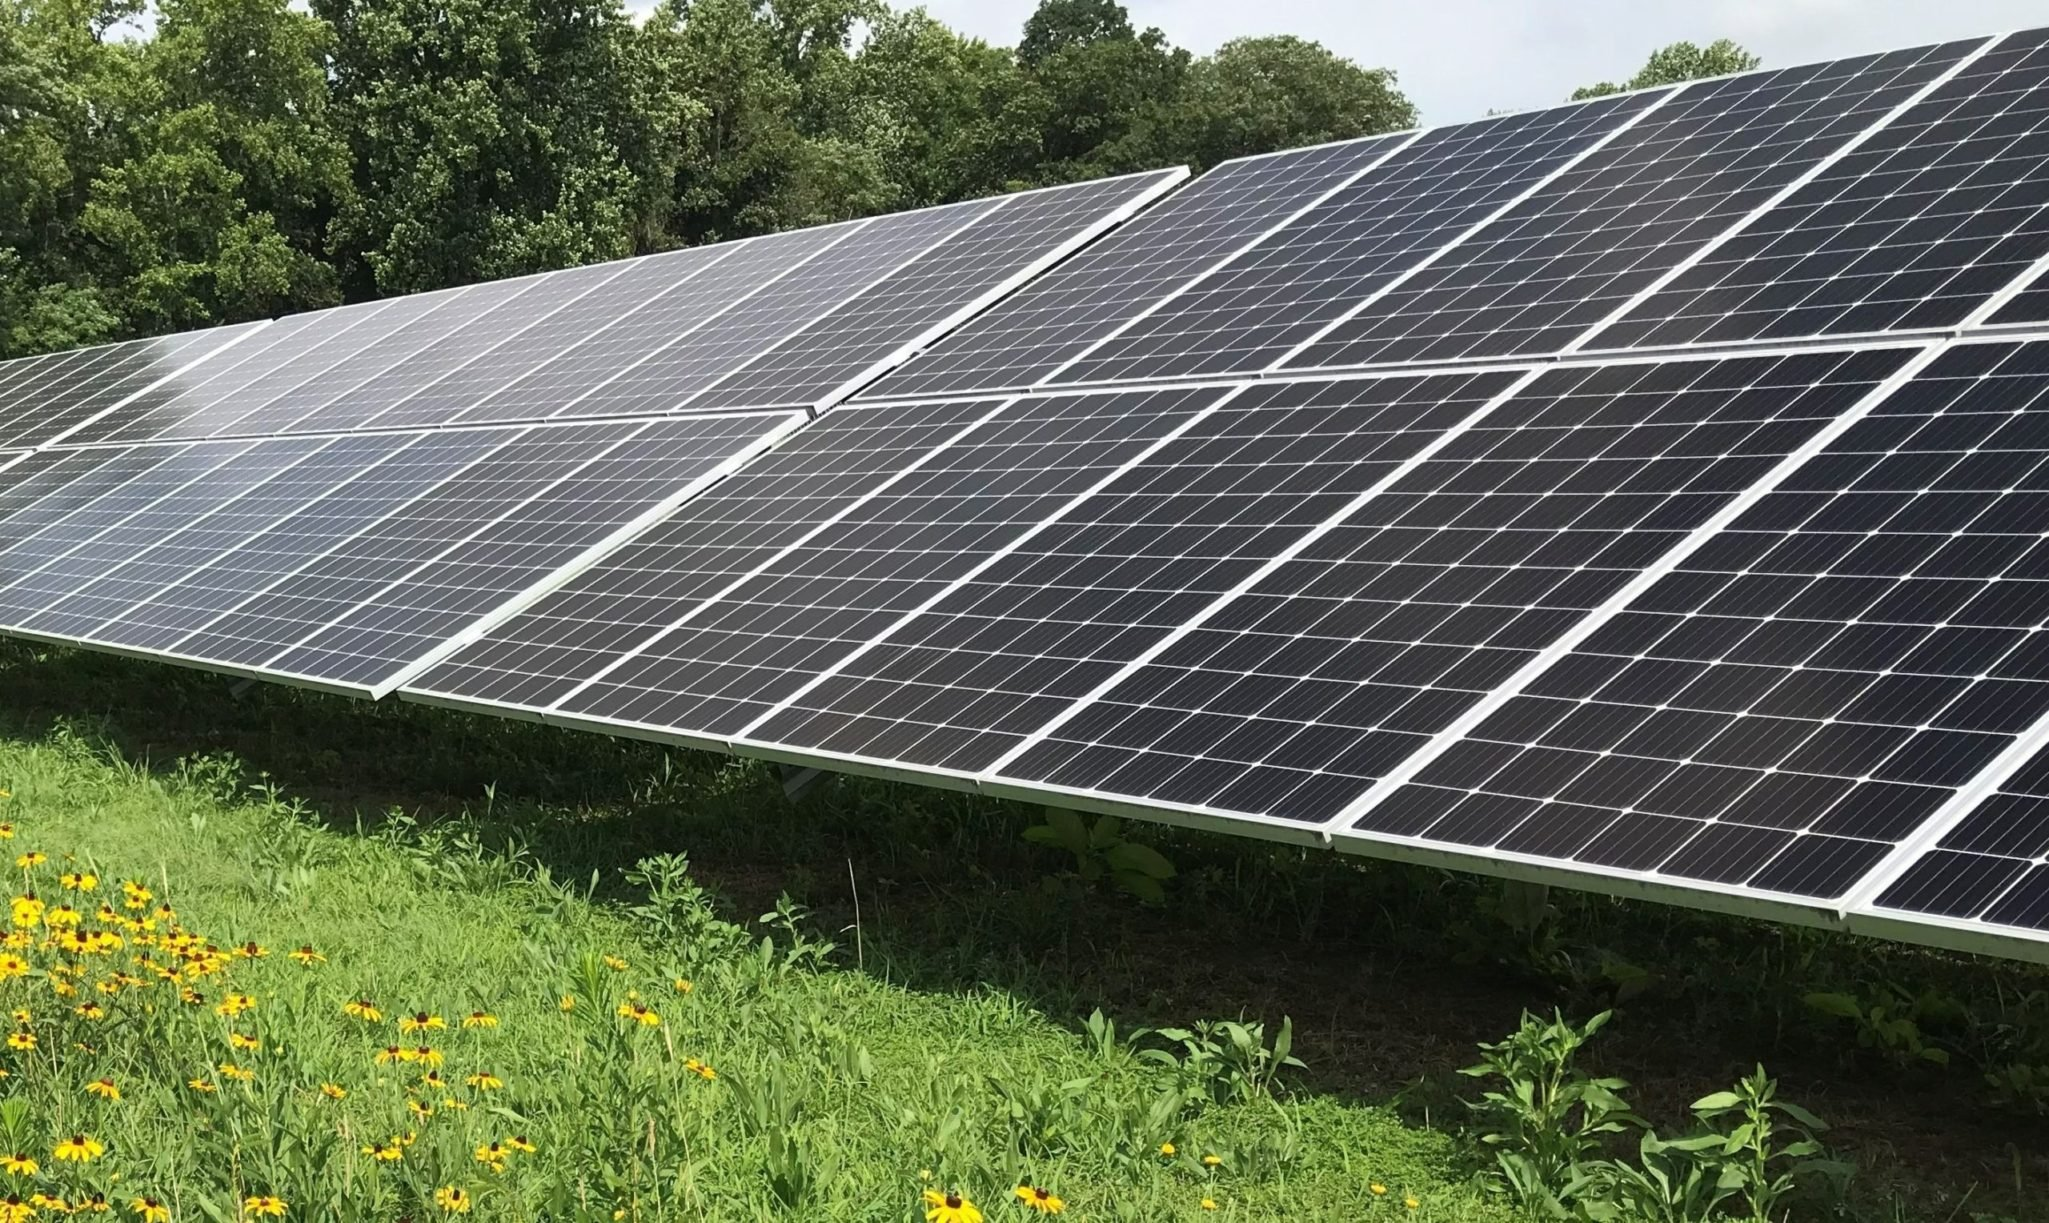 Keep It Simple, Solar: Developing Native Vegetation at Solar Energy Sites to Improve Drainage, Soil Health and Biodiversity